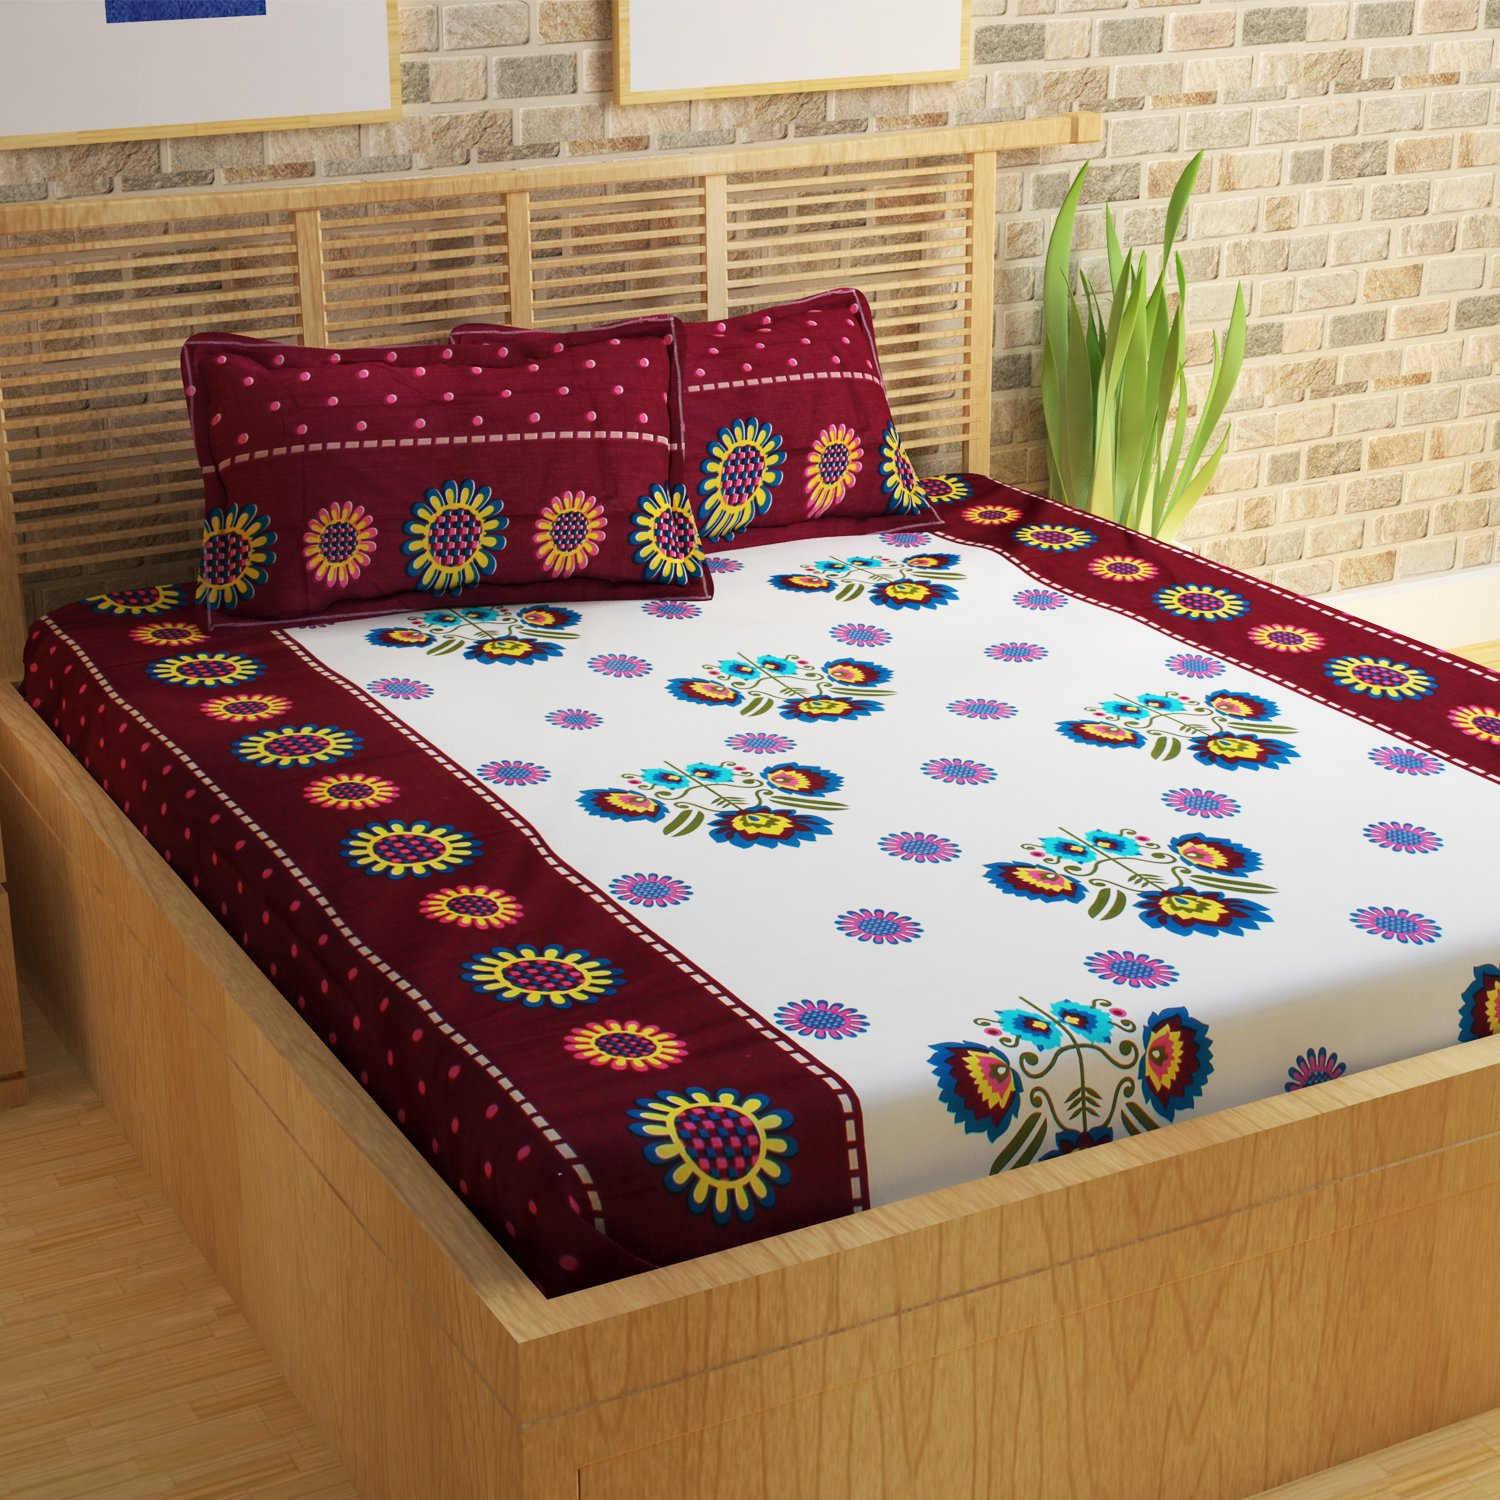 f412dc1ca47 Story Home Magic 152 TC Cotton Double Bedsheet with 2 Pillow Covers - Maroon   Amazon.in  Home   Kitchen